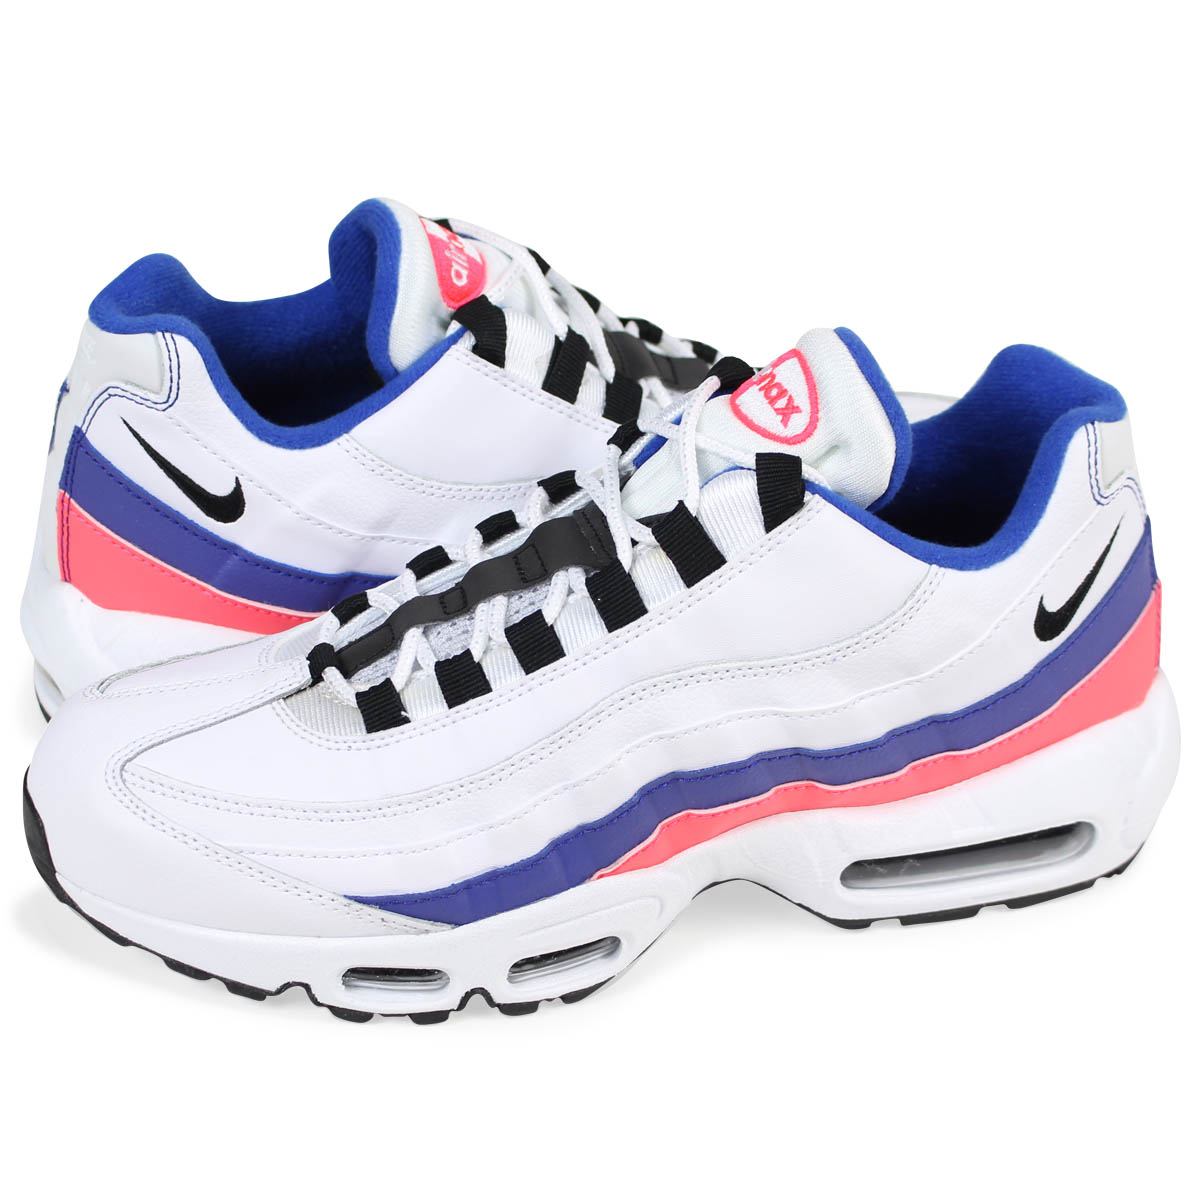 c909e96d0e Whats up Sports: NIKE AIR MAX 95 ESSENTIAL Kie Ney AMAX 95 essential  sneakers men 749,766-106 white [load planned Shinnyu load in reservation  product 2/9 ...